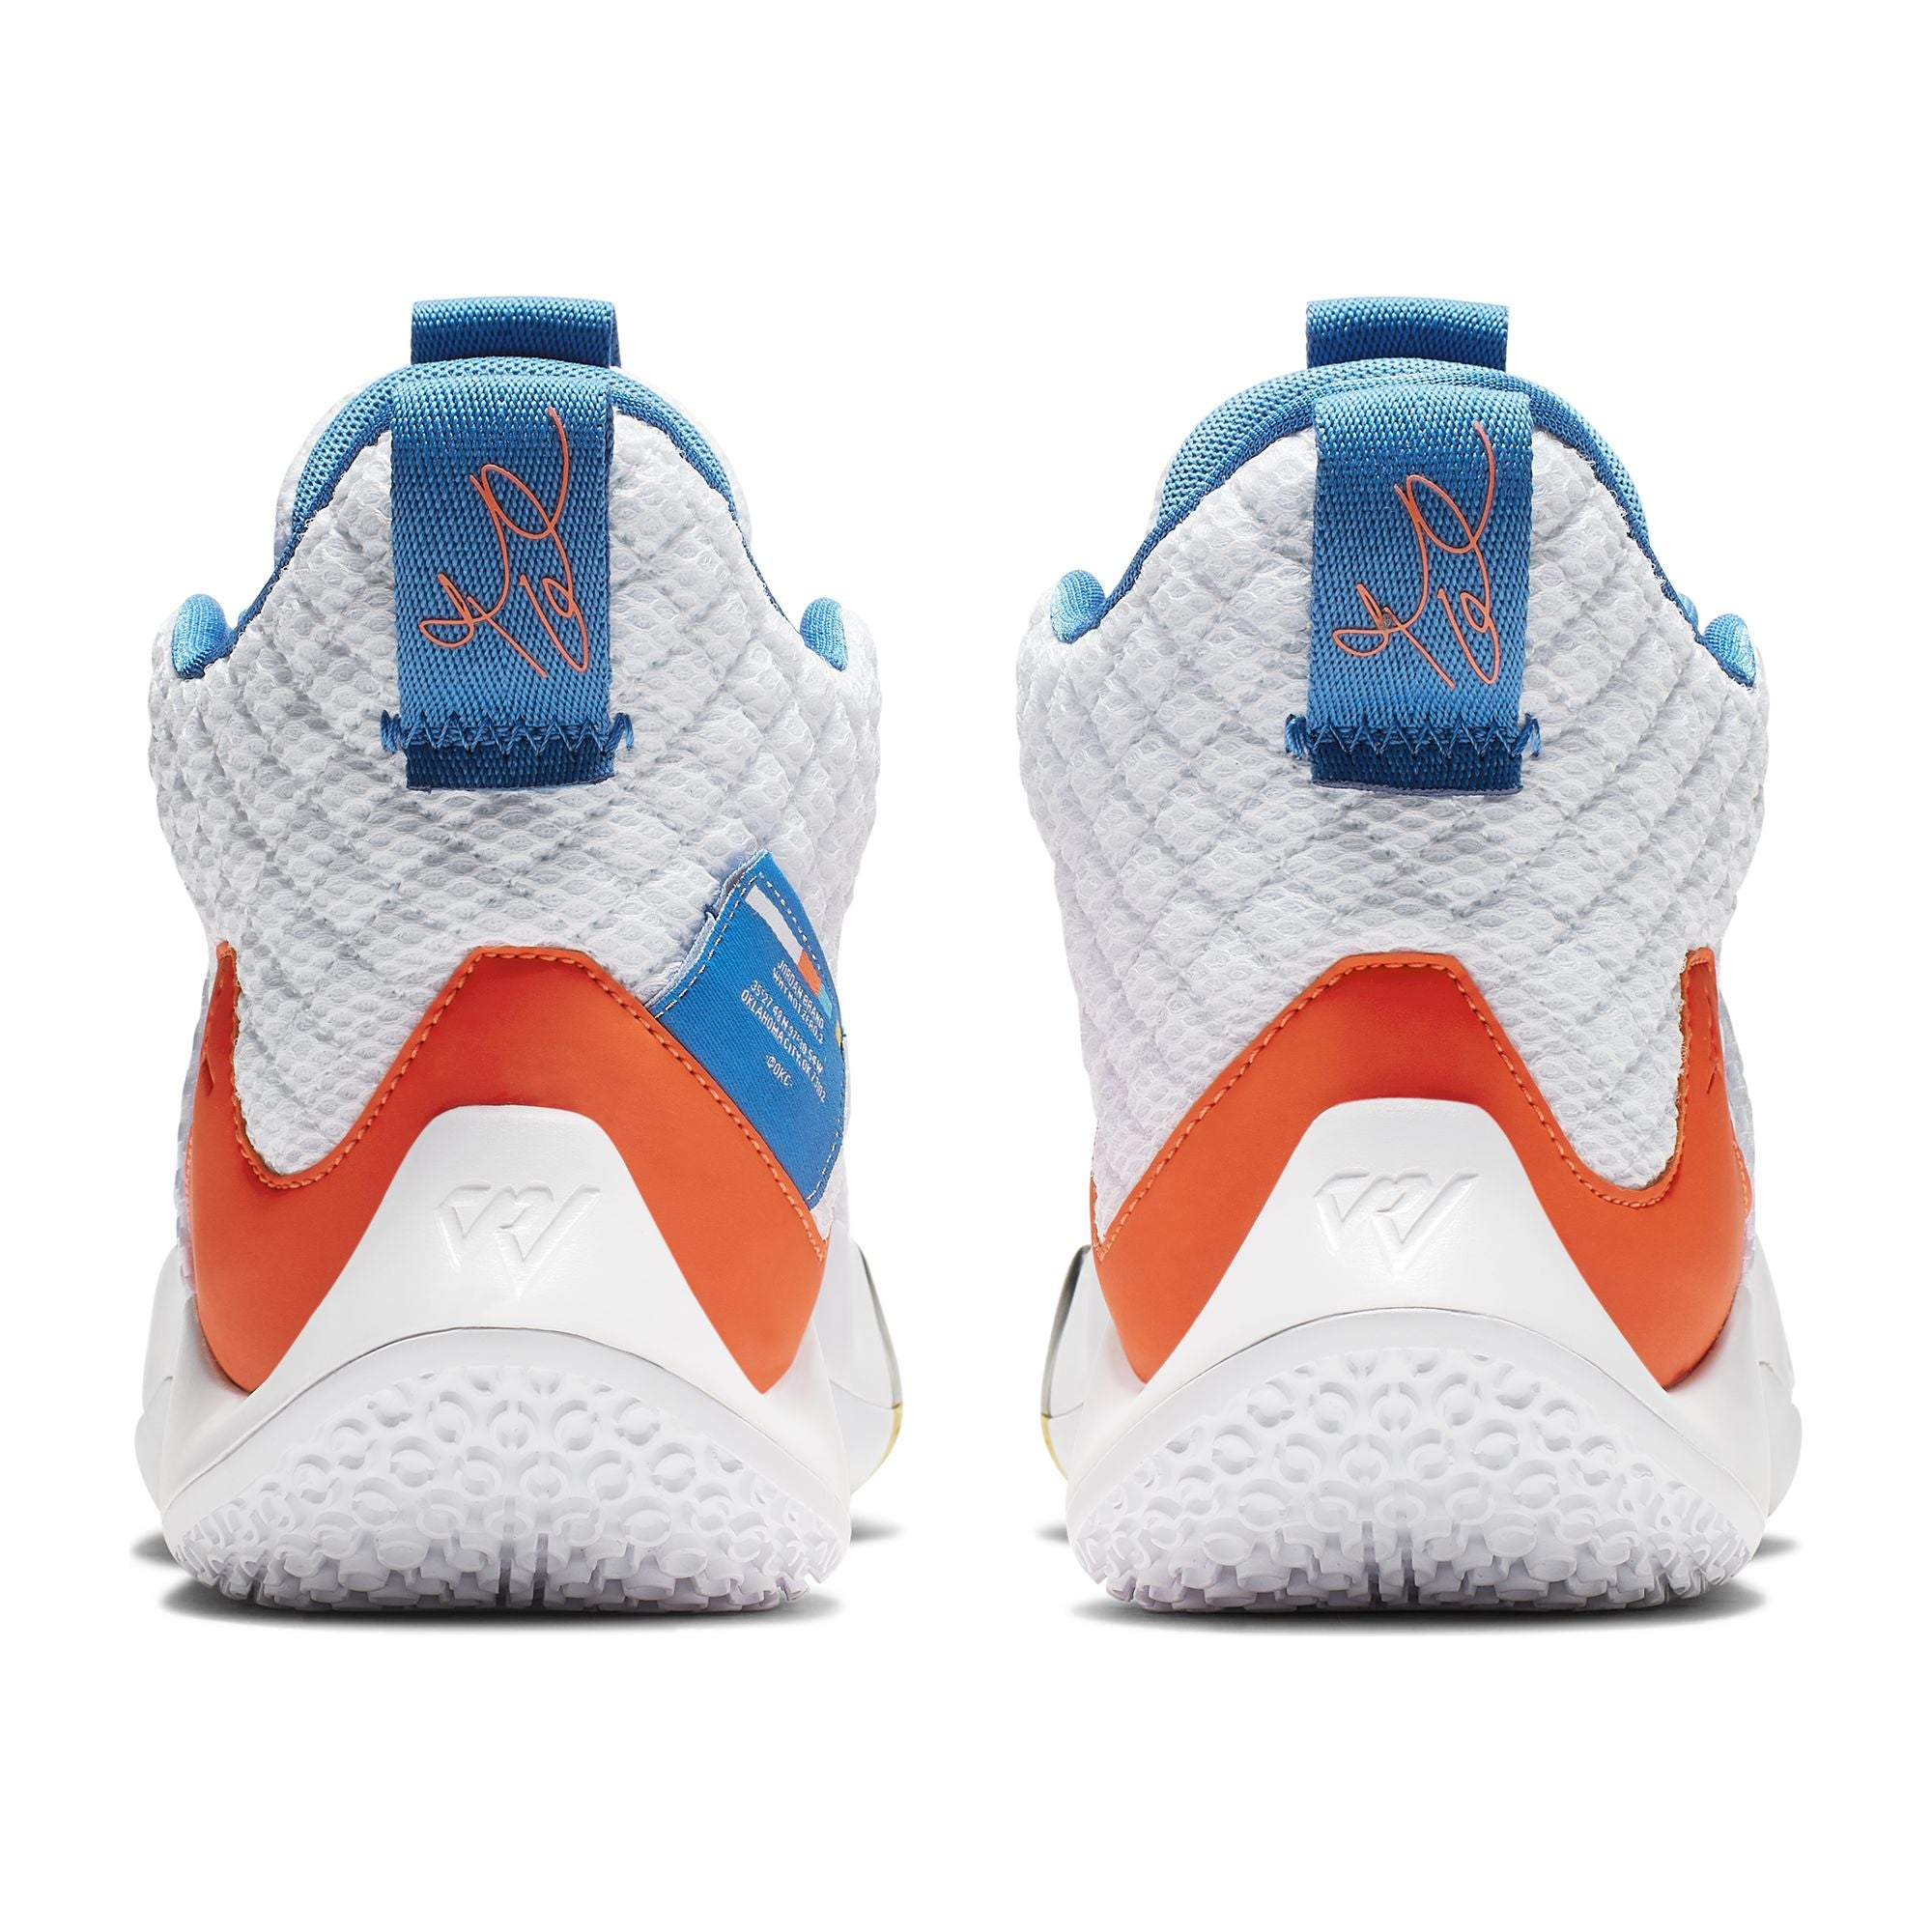 Nike Kids Jordan Why Not Zer0.2 Basketball Boot/Shoe - White/Total Crimson/Blue Lagoon